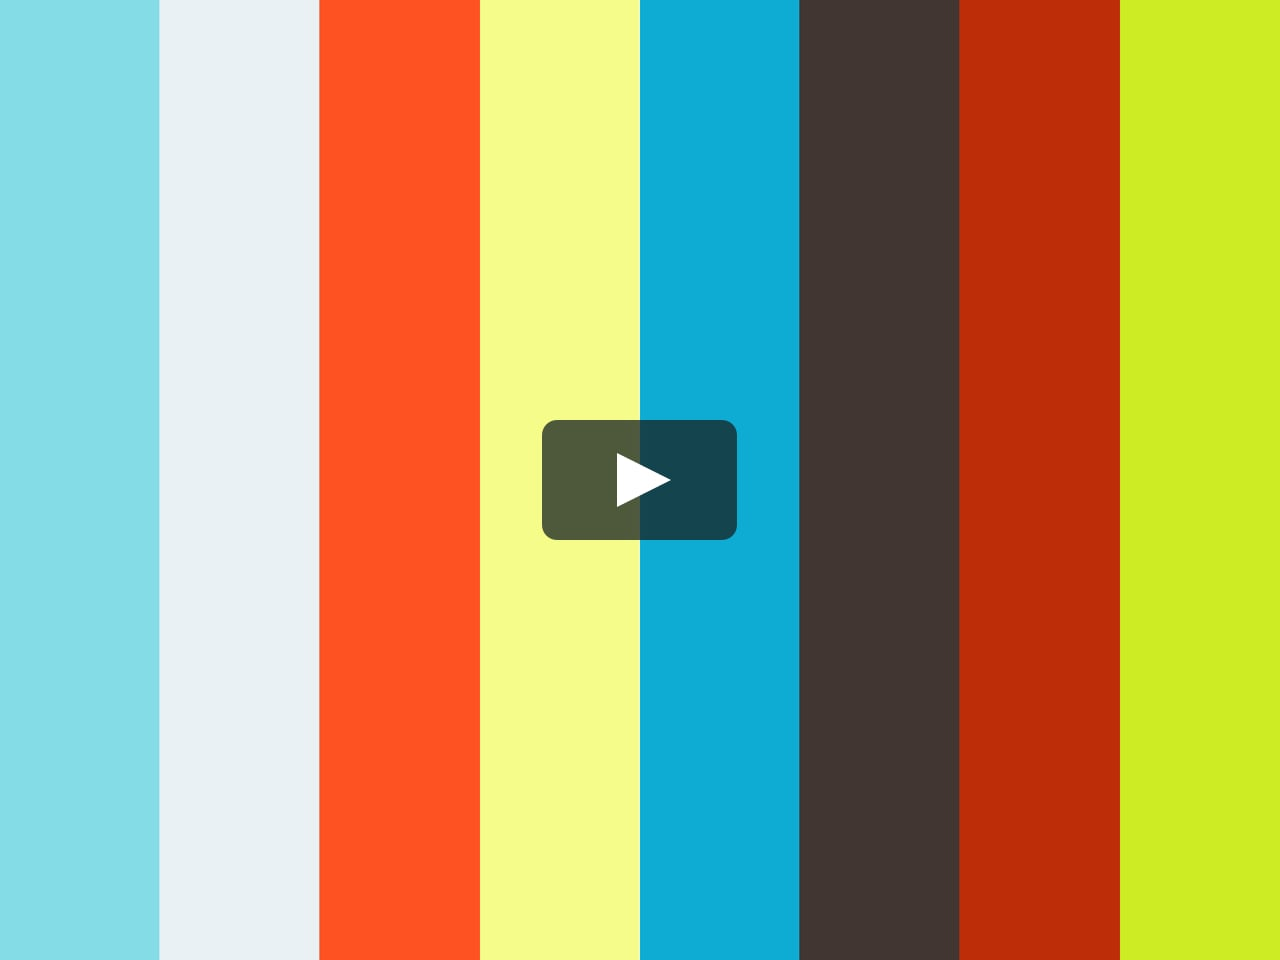 Tiny apartment in Paris (8sqm only) on Vimeo on house design companies, house gate design, living room design, house desings, home design, house ceiling design, house plans, bathroom design, outside house design, house front design, kitchen design, modern house design, house with blue, fashion design, house minimalist design, house brochure design, house floor design, house blueprints, house altar design, house exterior design ideas,